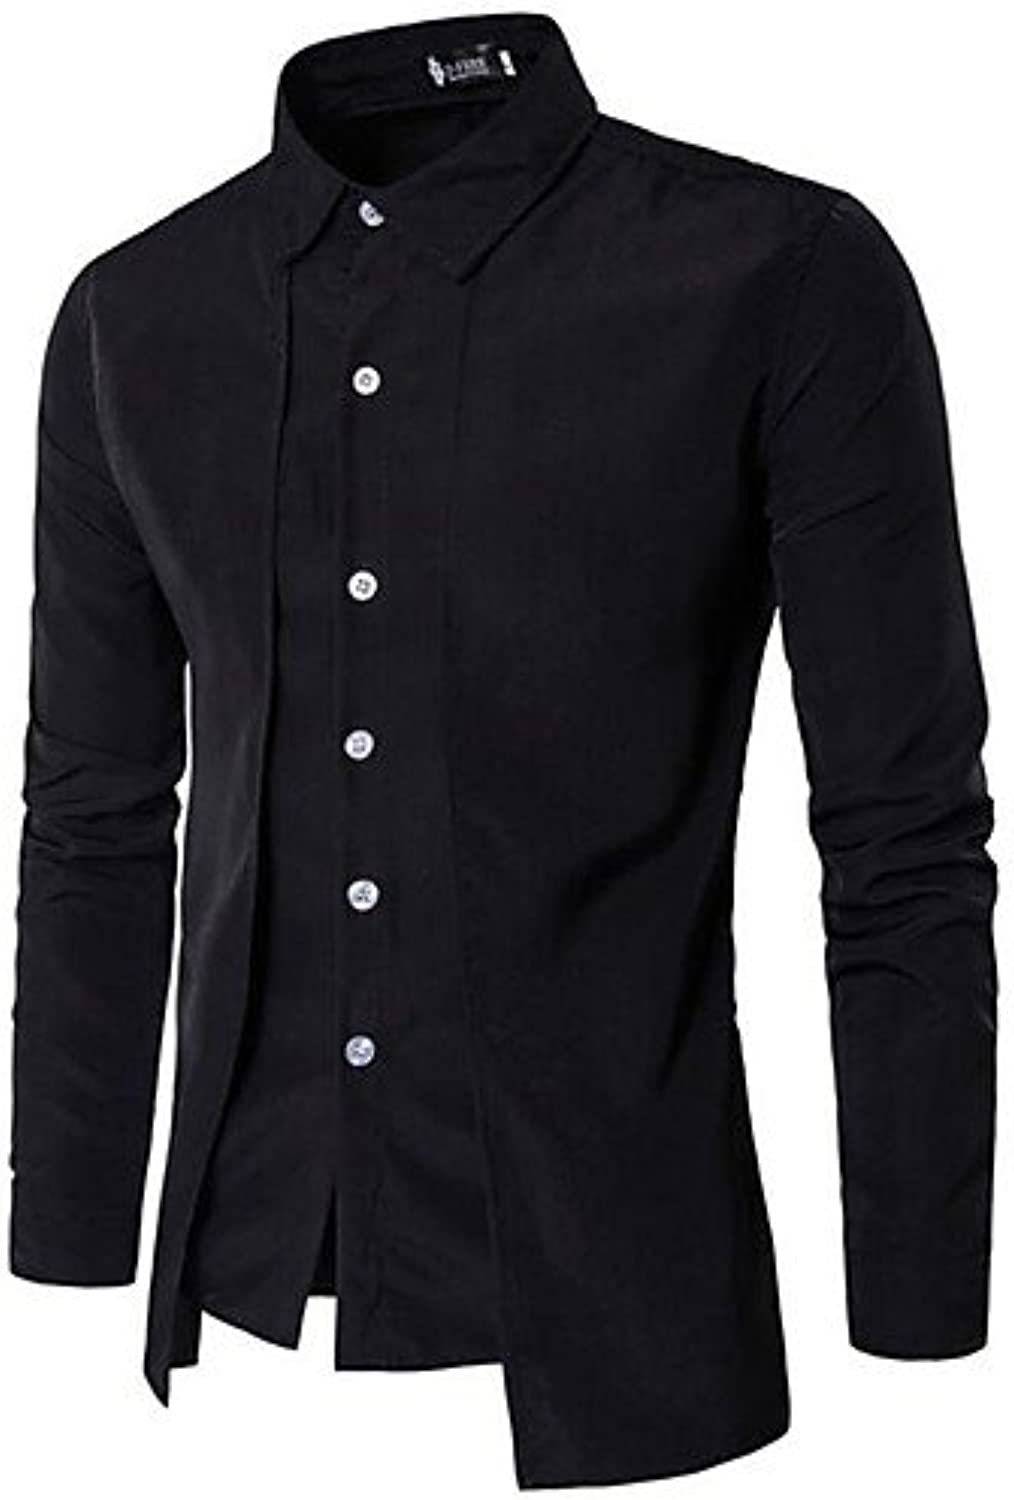 HAN-NMC Men'S Casual Daily Simple Spring Fall Shirt,Solid Square Neck Long Sleeves Cotton Opaque,M,Black